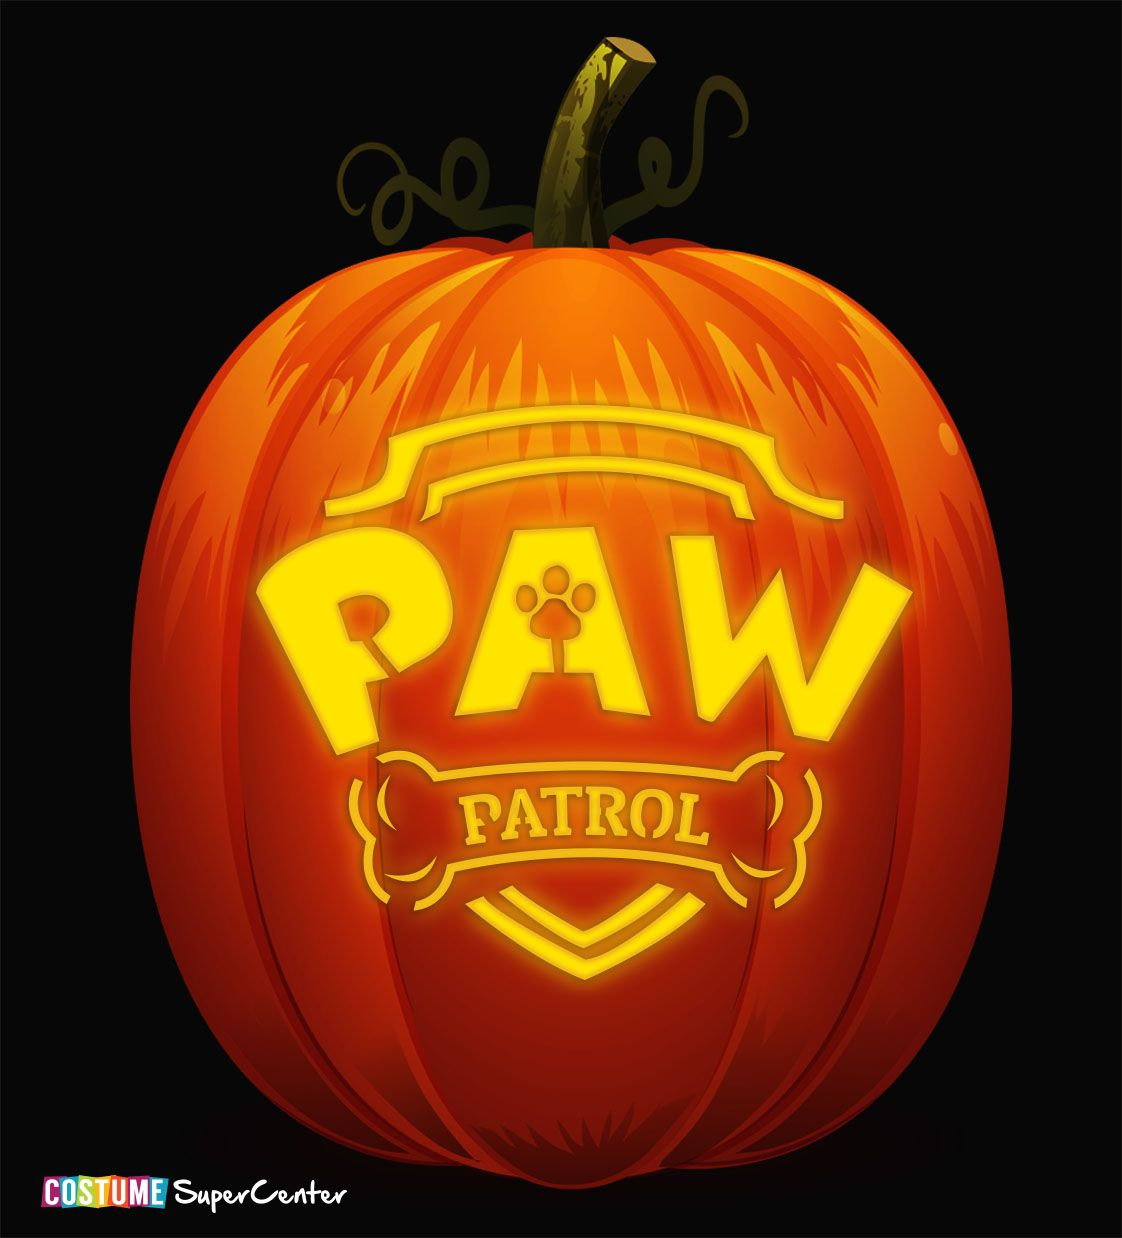 FREE Paw Patrol Pumpkin Stencils - Paw patrol pumpkin stencil, Pumpkin stencil, Pumpkin carvings stencils, Pumkin carving, Pumpkin, Pumpkin carving stencils free - Fetch the squad and get ready to search for the best pumpkin in the patch  Why, you ask  Because we've got some free pumpkin carving stencils that will save the day  When you're patroll…